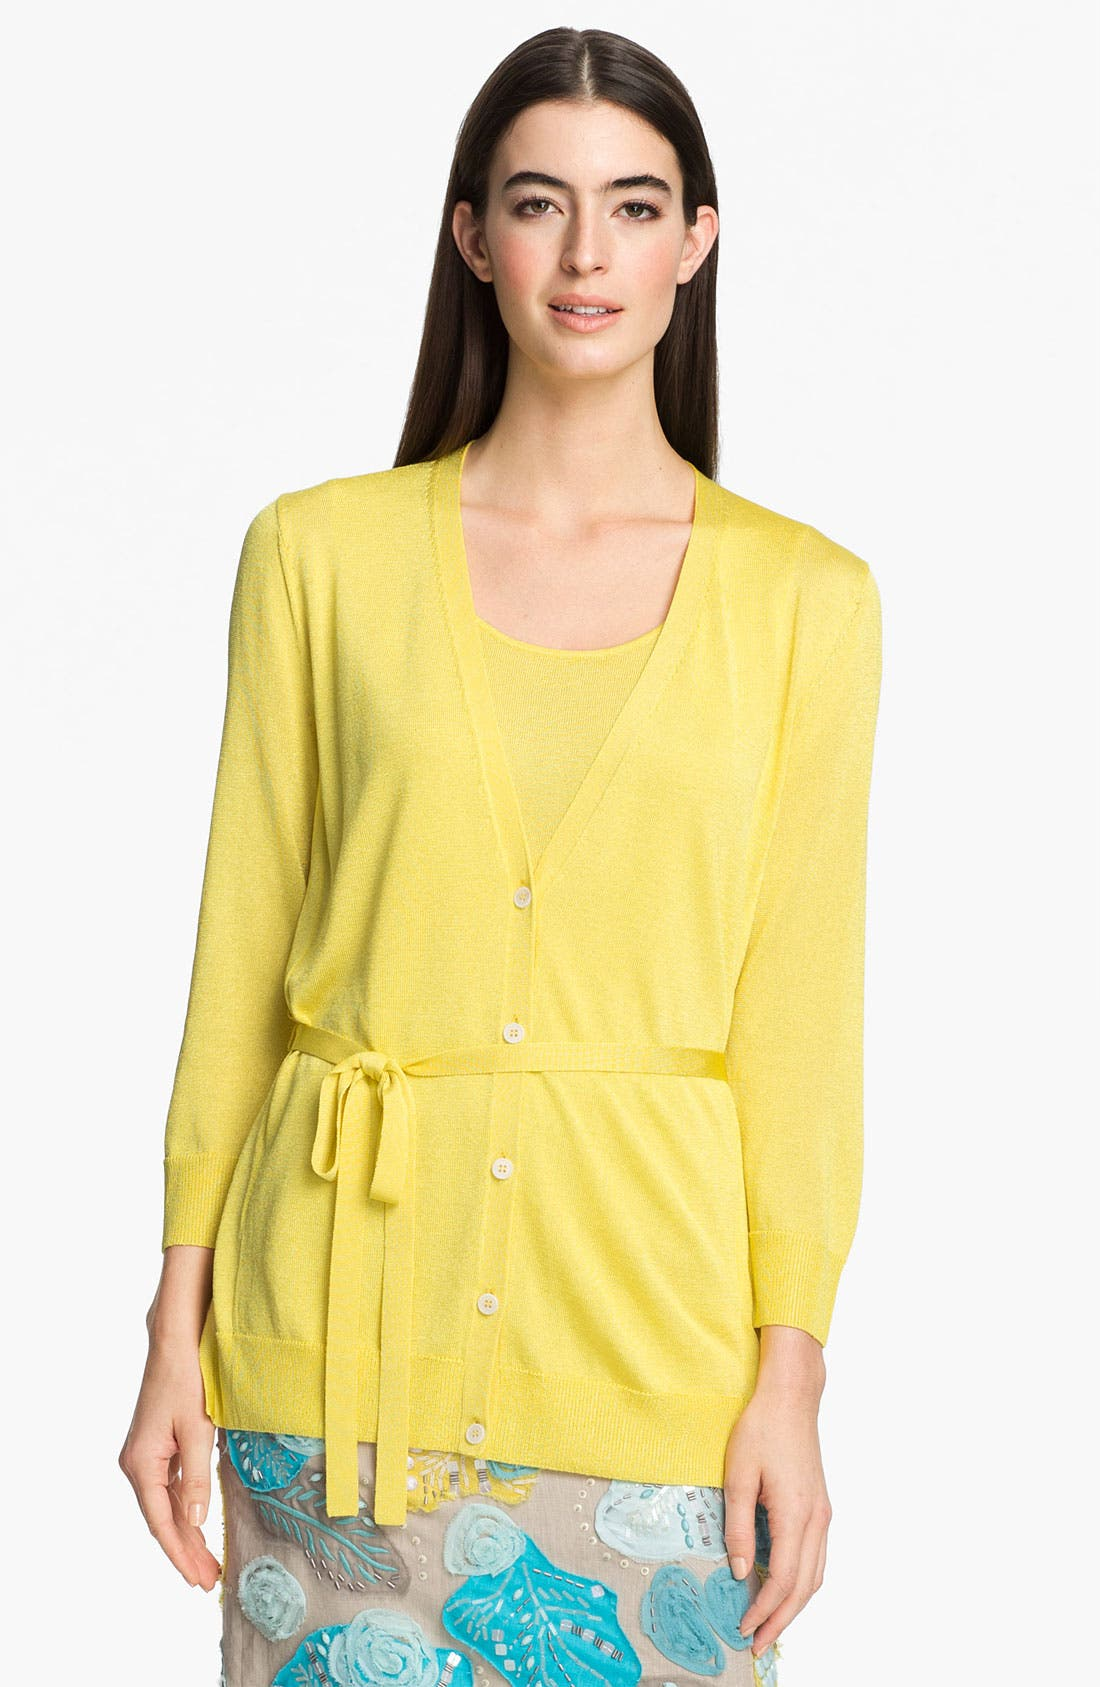 Alternate Image 1 Selected - Lafayette 148 New York 'Pure Radiance' Cardigan